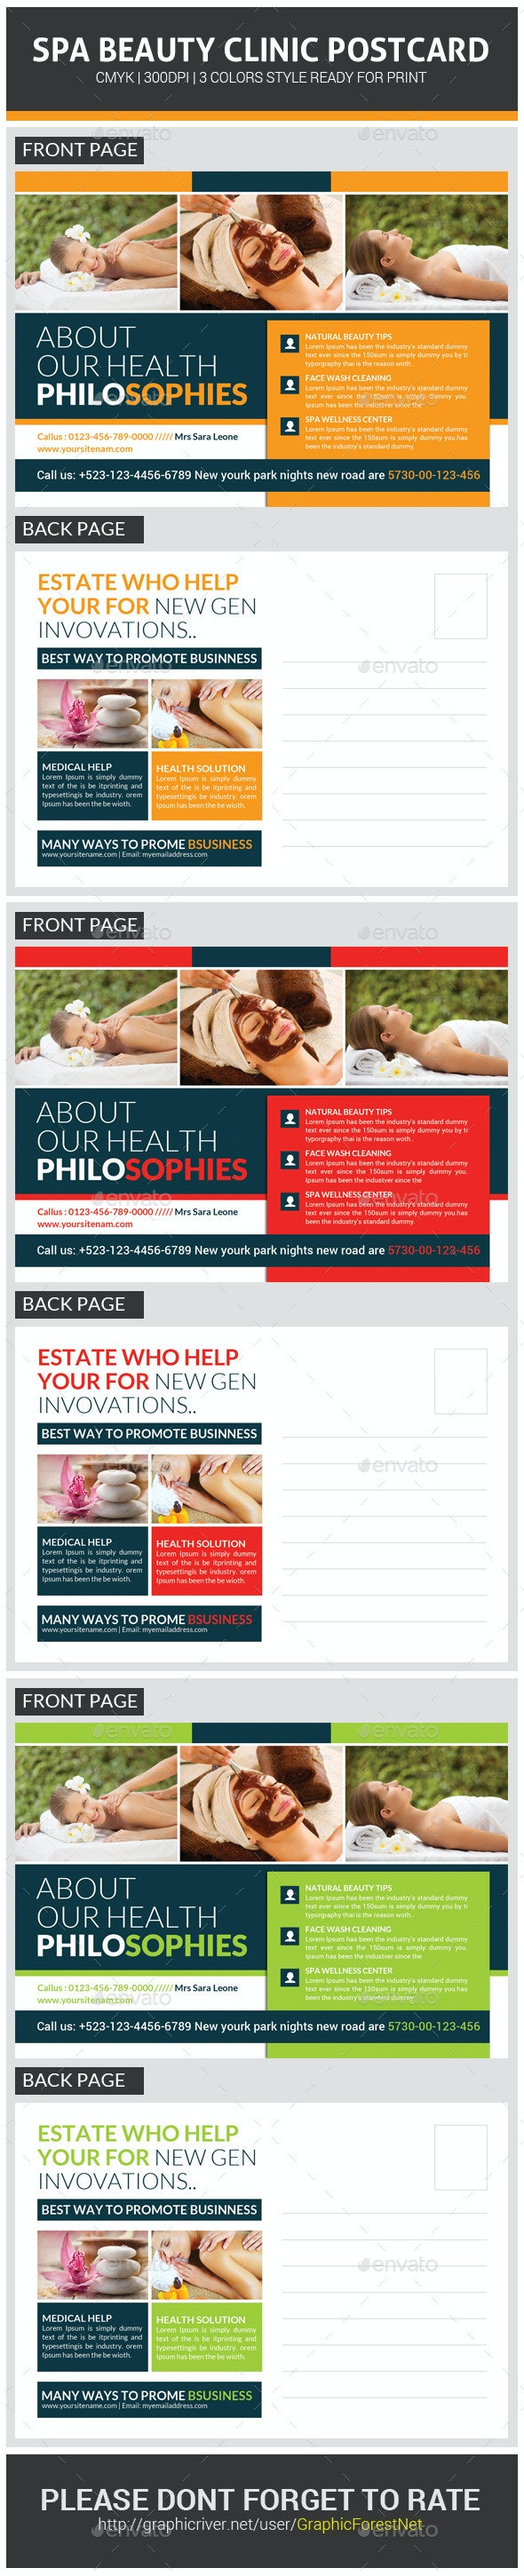 Spa Beauty Postcard Template - Corporate Flyers